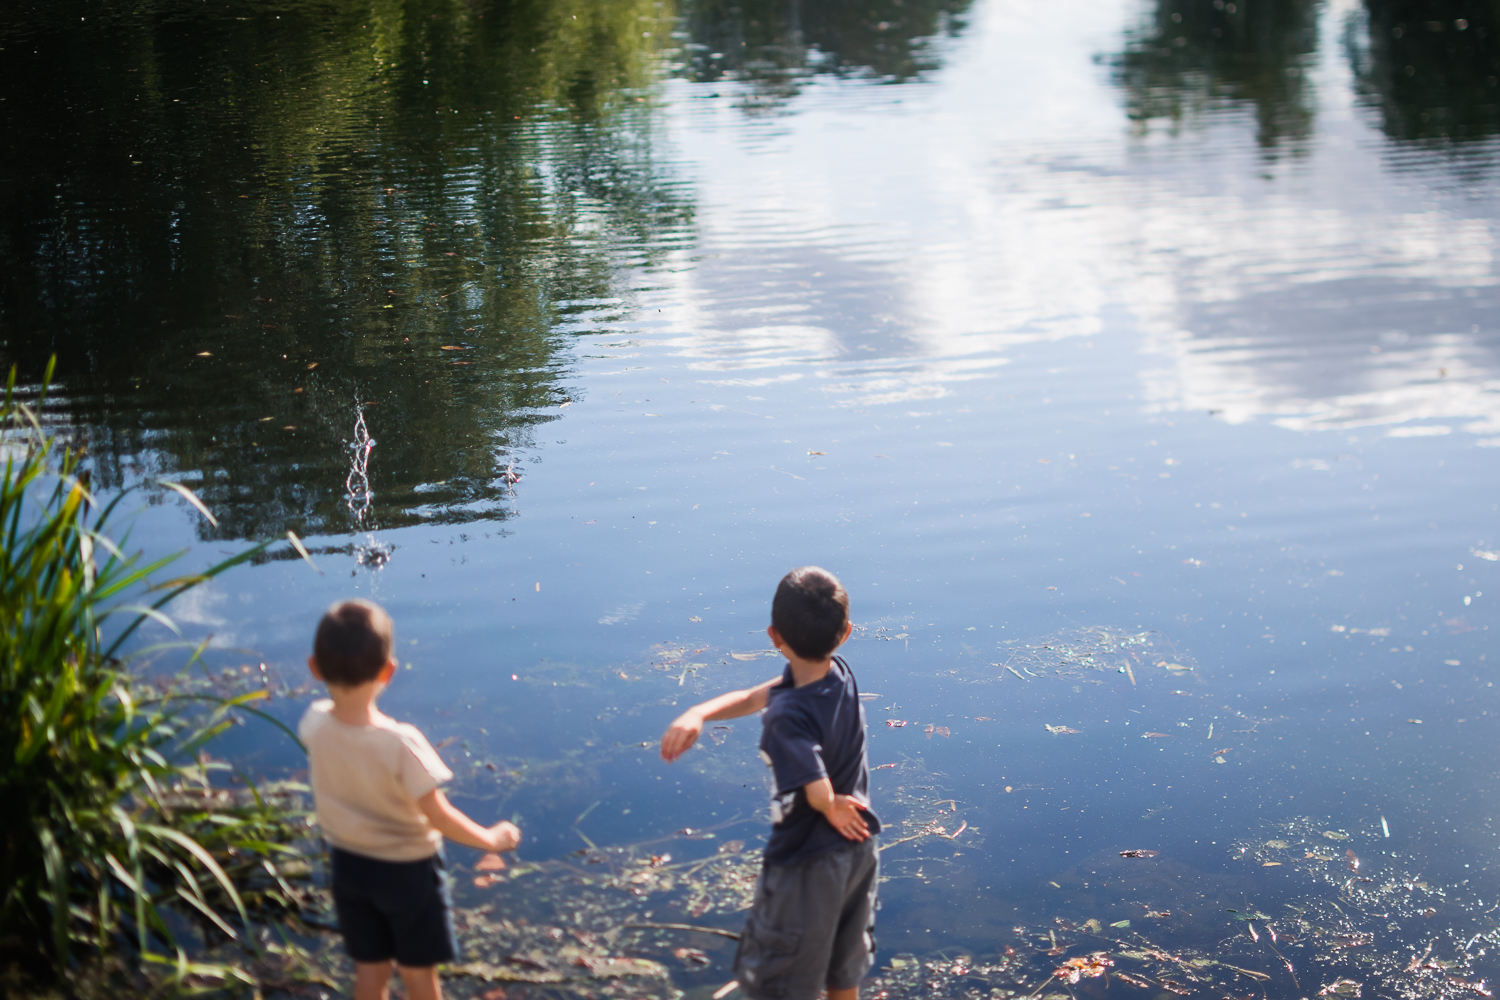 Freelensed photograph of two children throwing stones in the wat